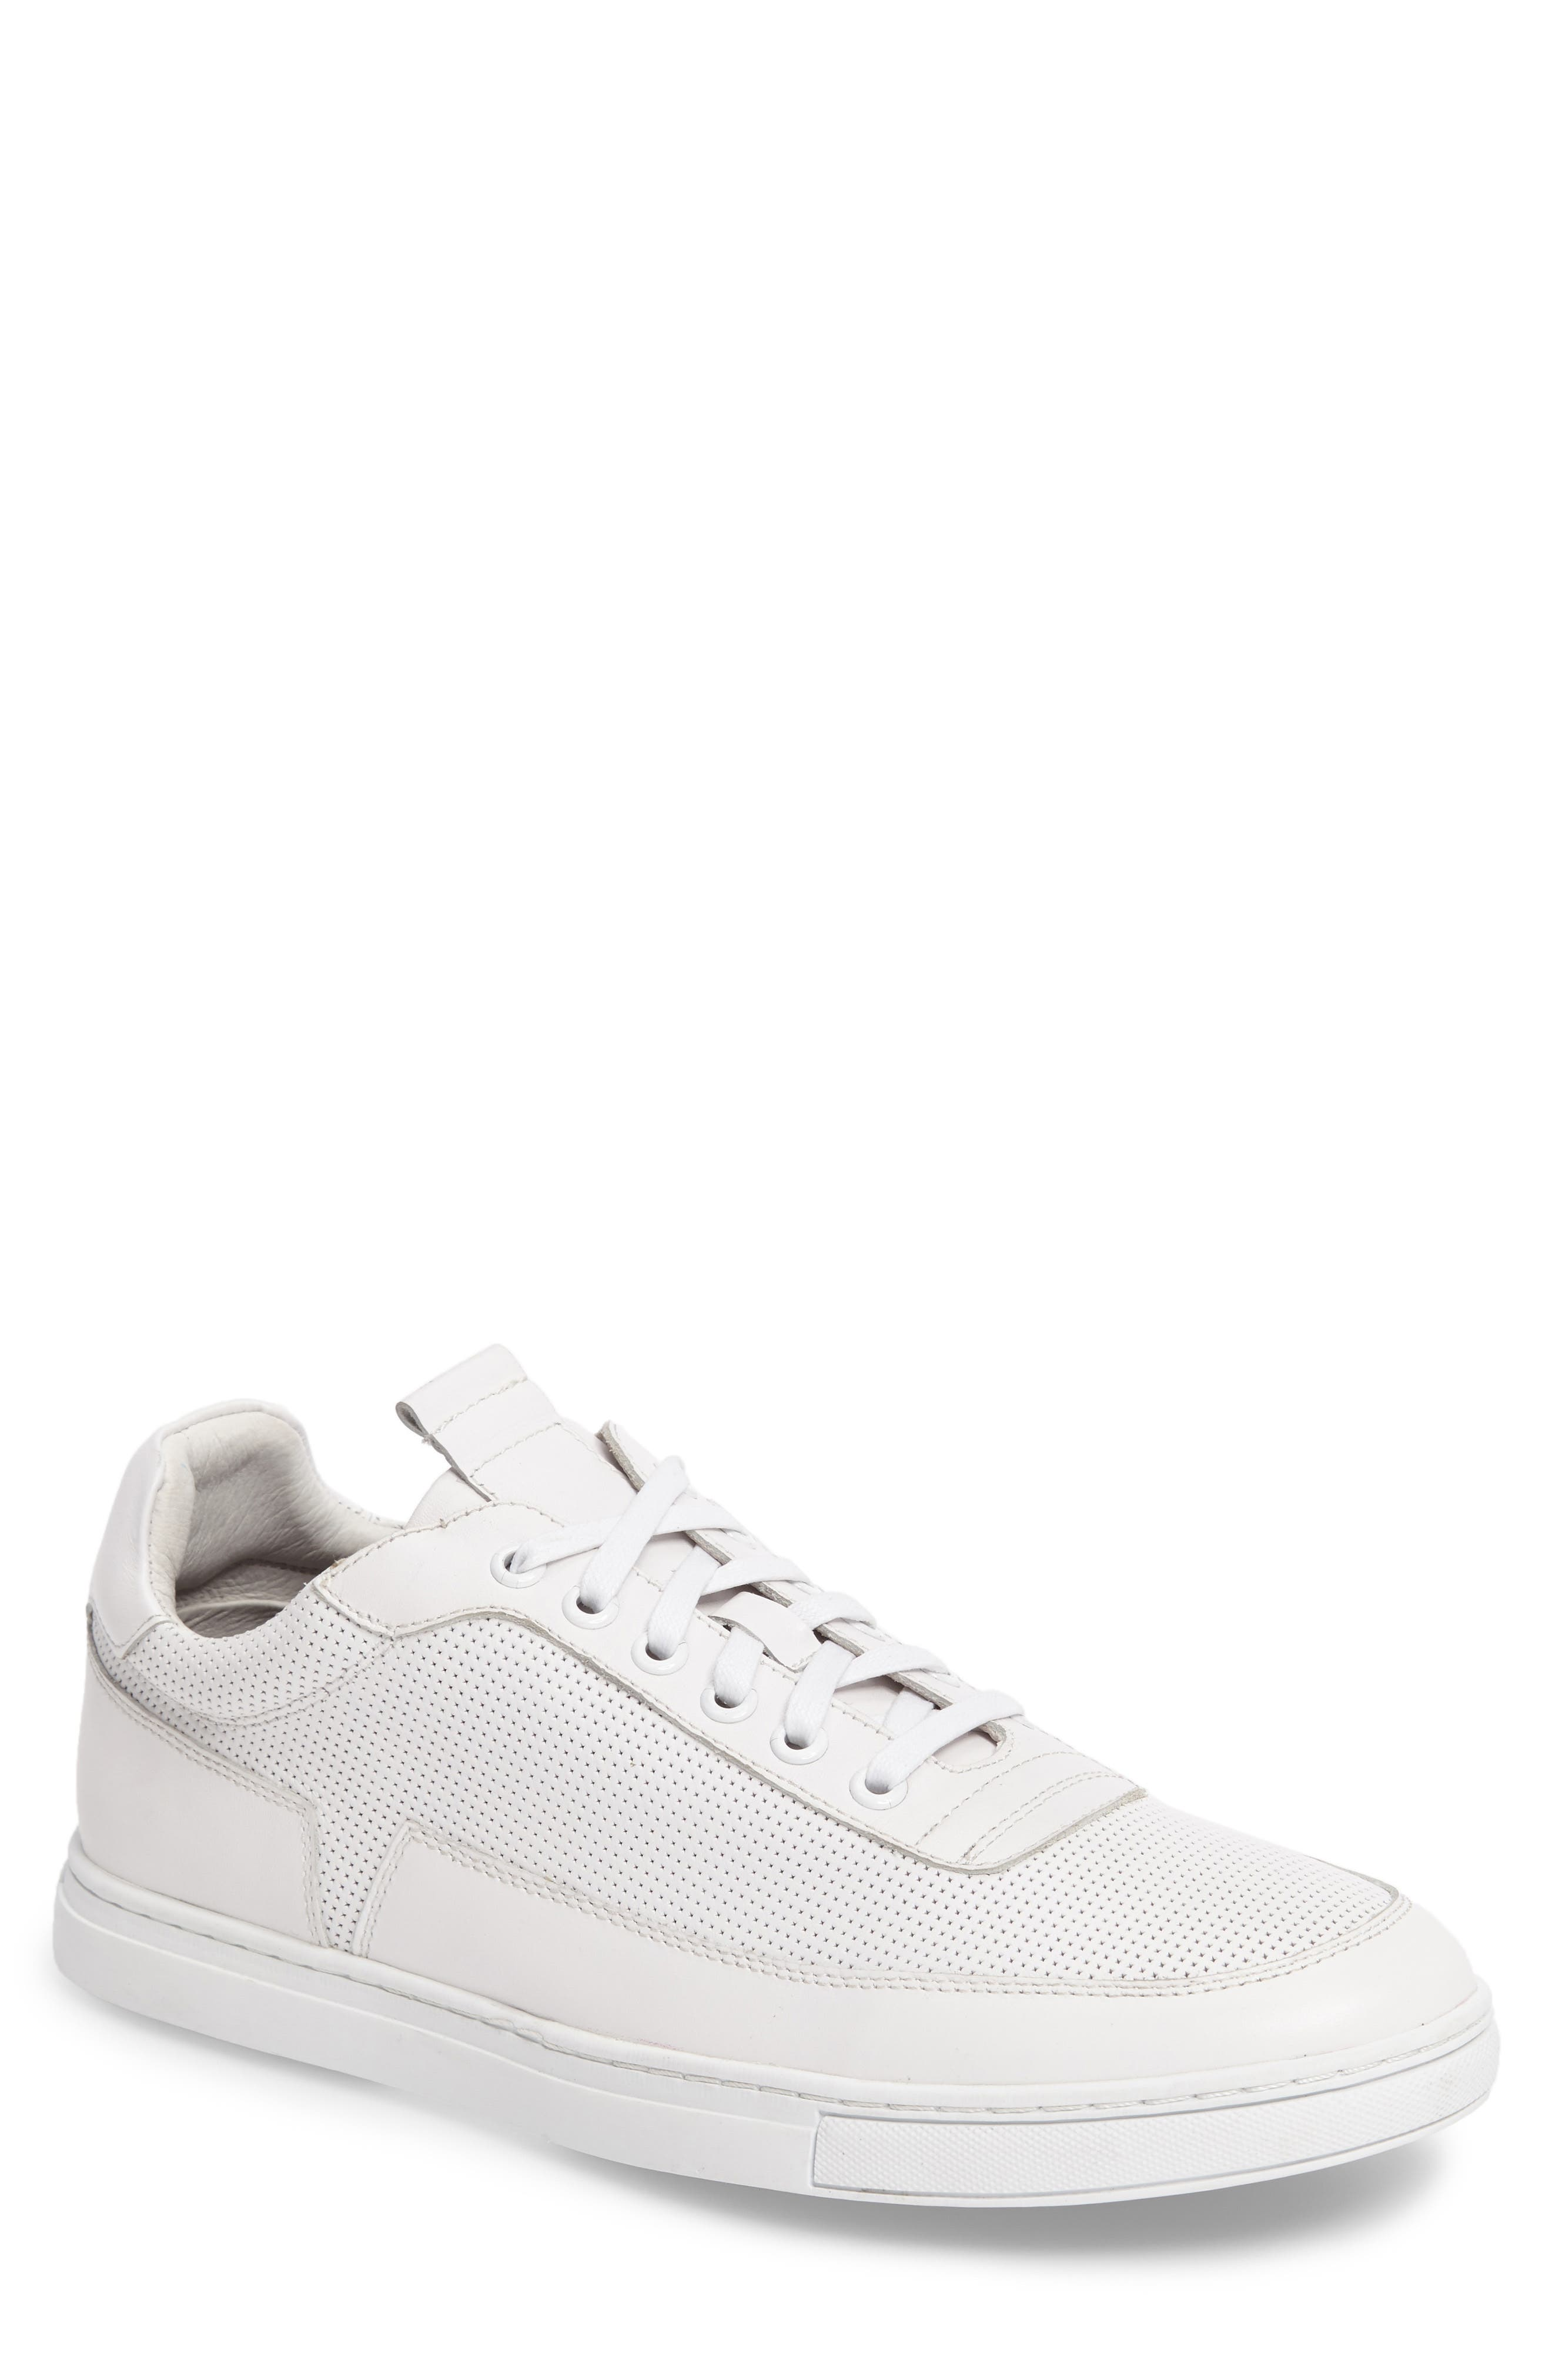 Harmony Sneaker,                         Main,                         color, WHITE LEATHER